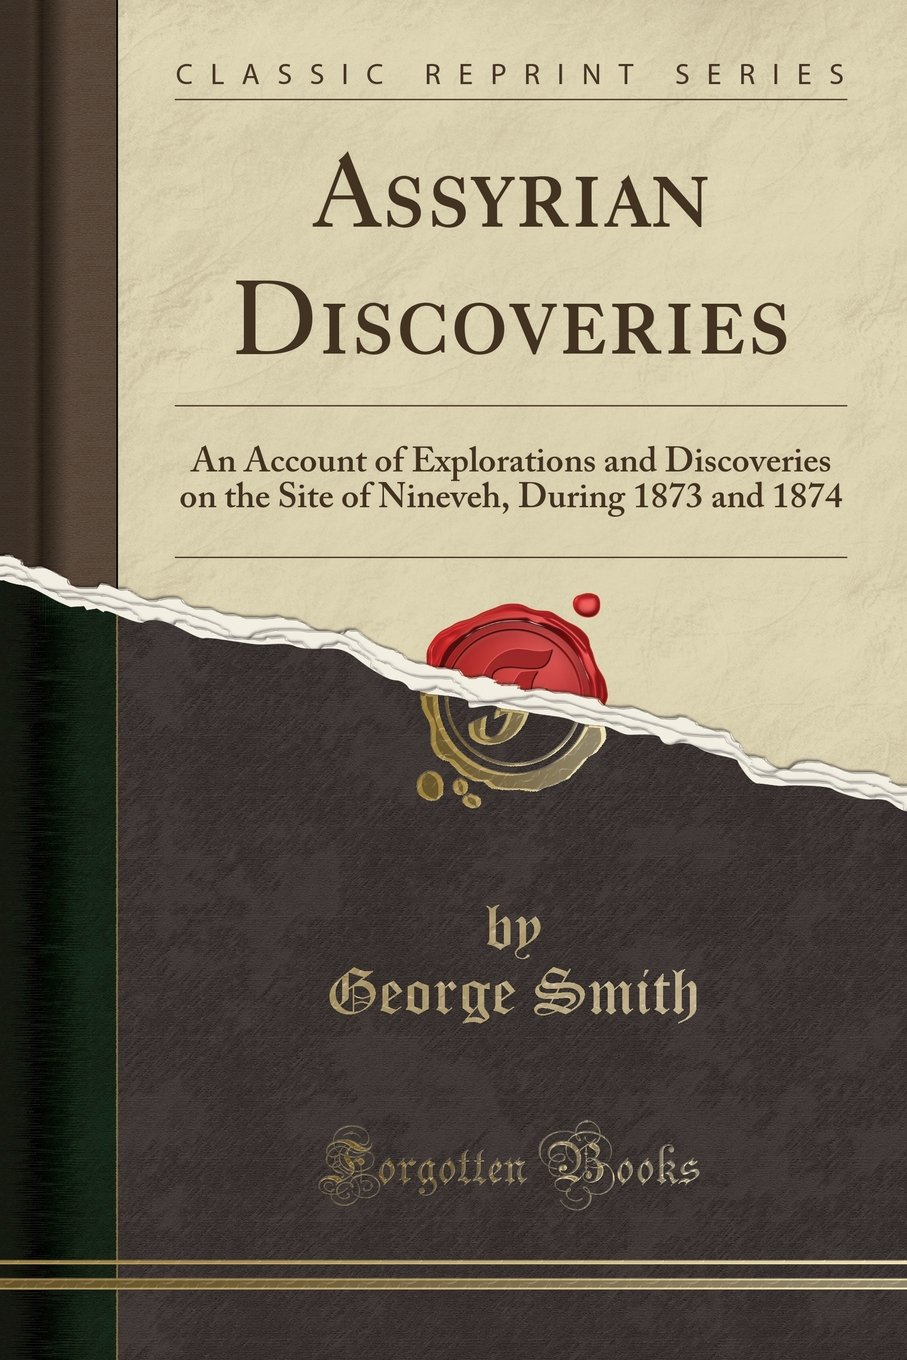 Assyrian Discoveries: An Account of Explorations and Discoveries on the Site of Nineveh, During 1873 and 1874 (Classic Reprint) pdf epub